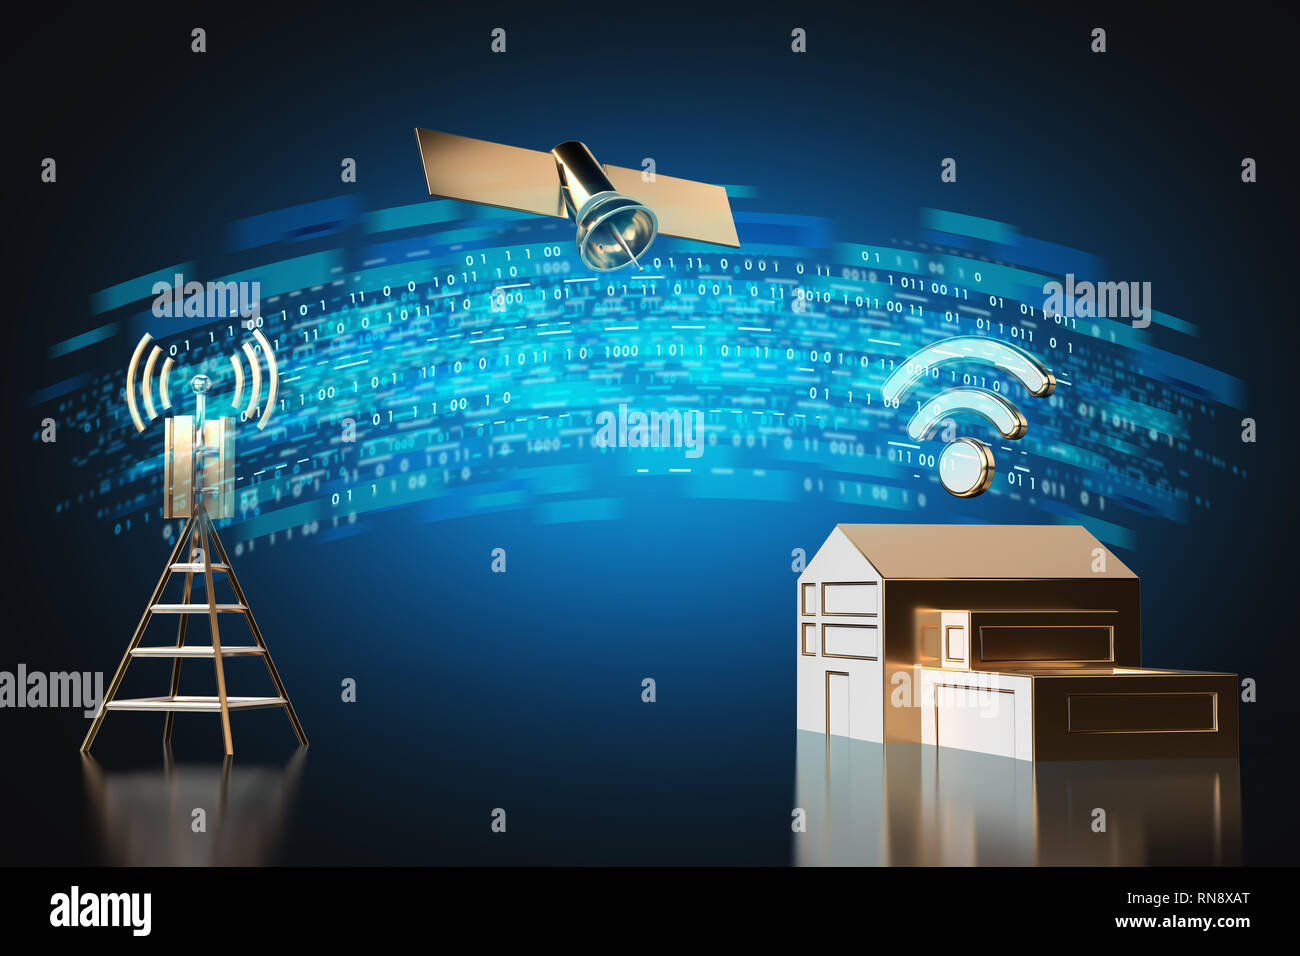 High speed data transfer from home  Fast internet connection concept